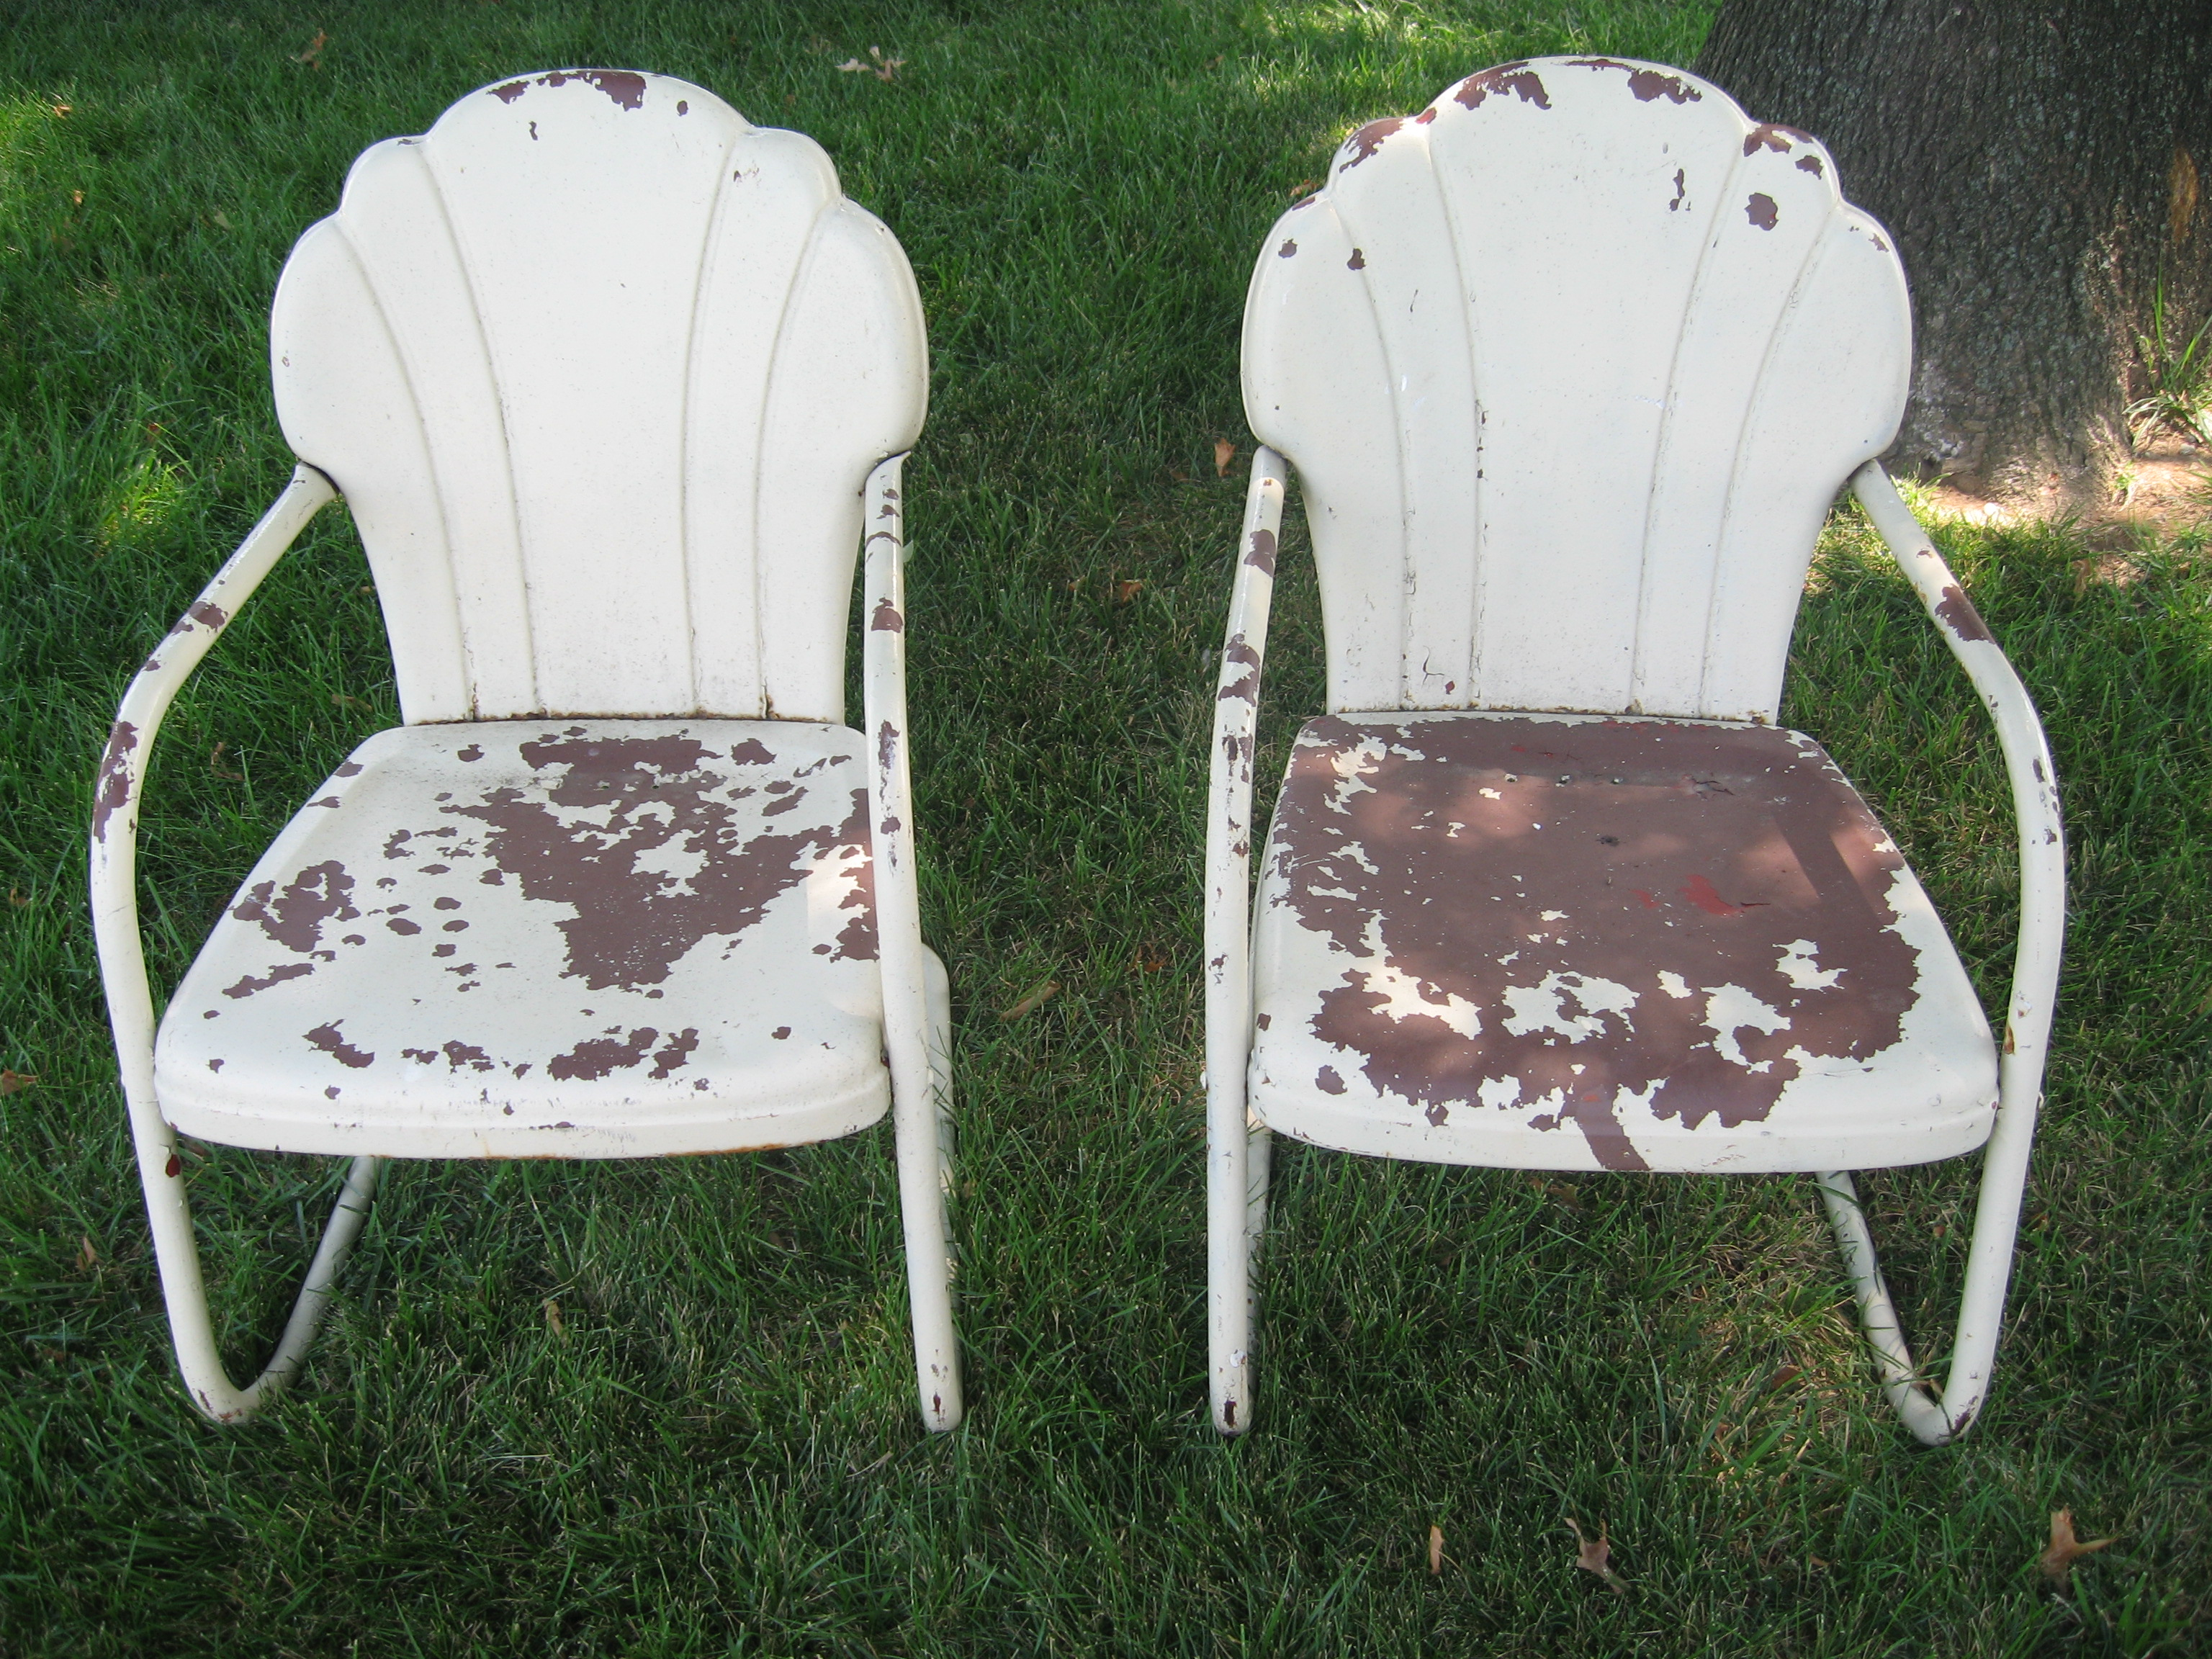 two metal lawn chairs